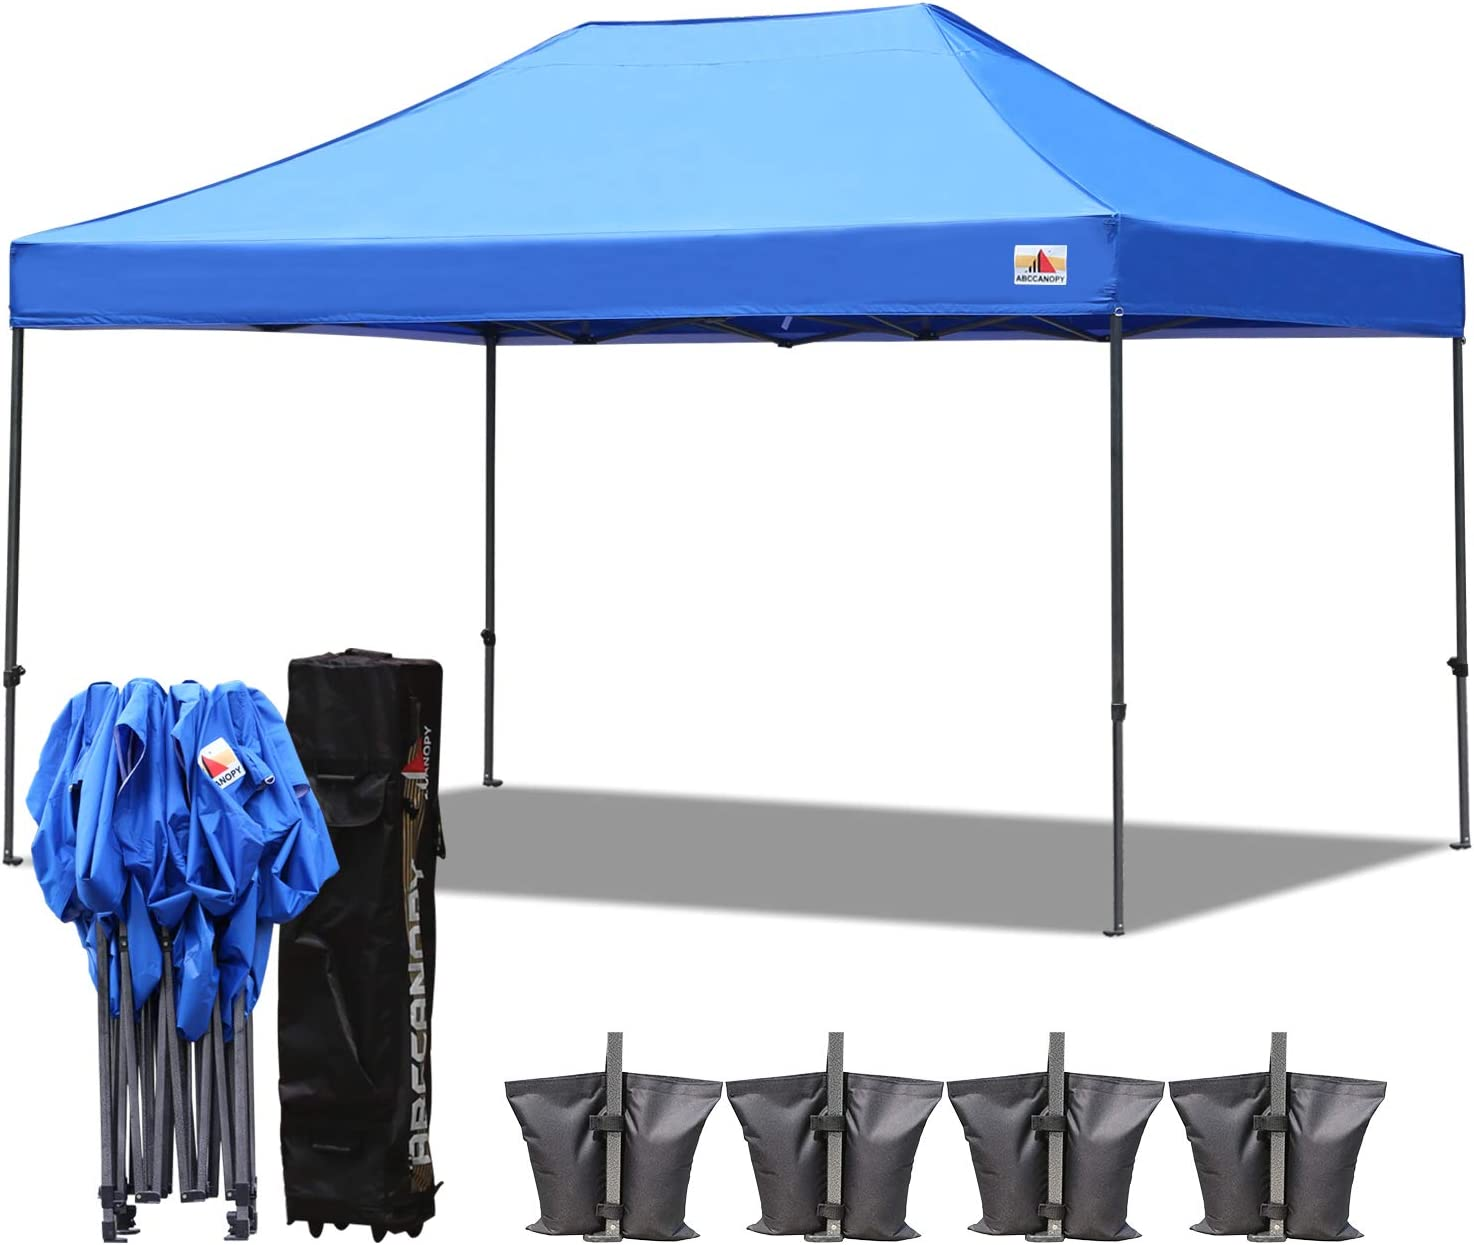 ABCCANOPY 18 Colors 10×15 Pop up Tent Instant Canopy Commercial Outdoor Canopy with Wheeled Carry Bag Bonus 4 Weight Bags Blue